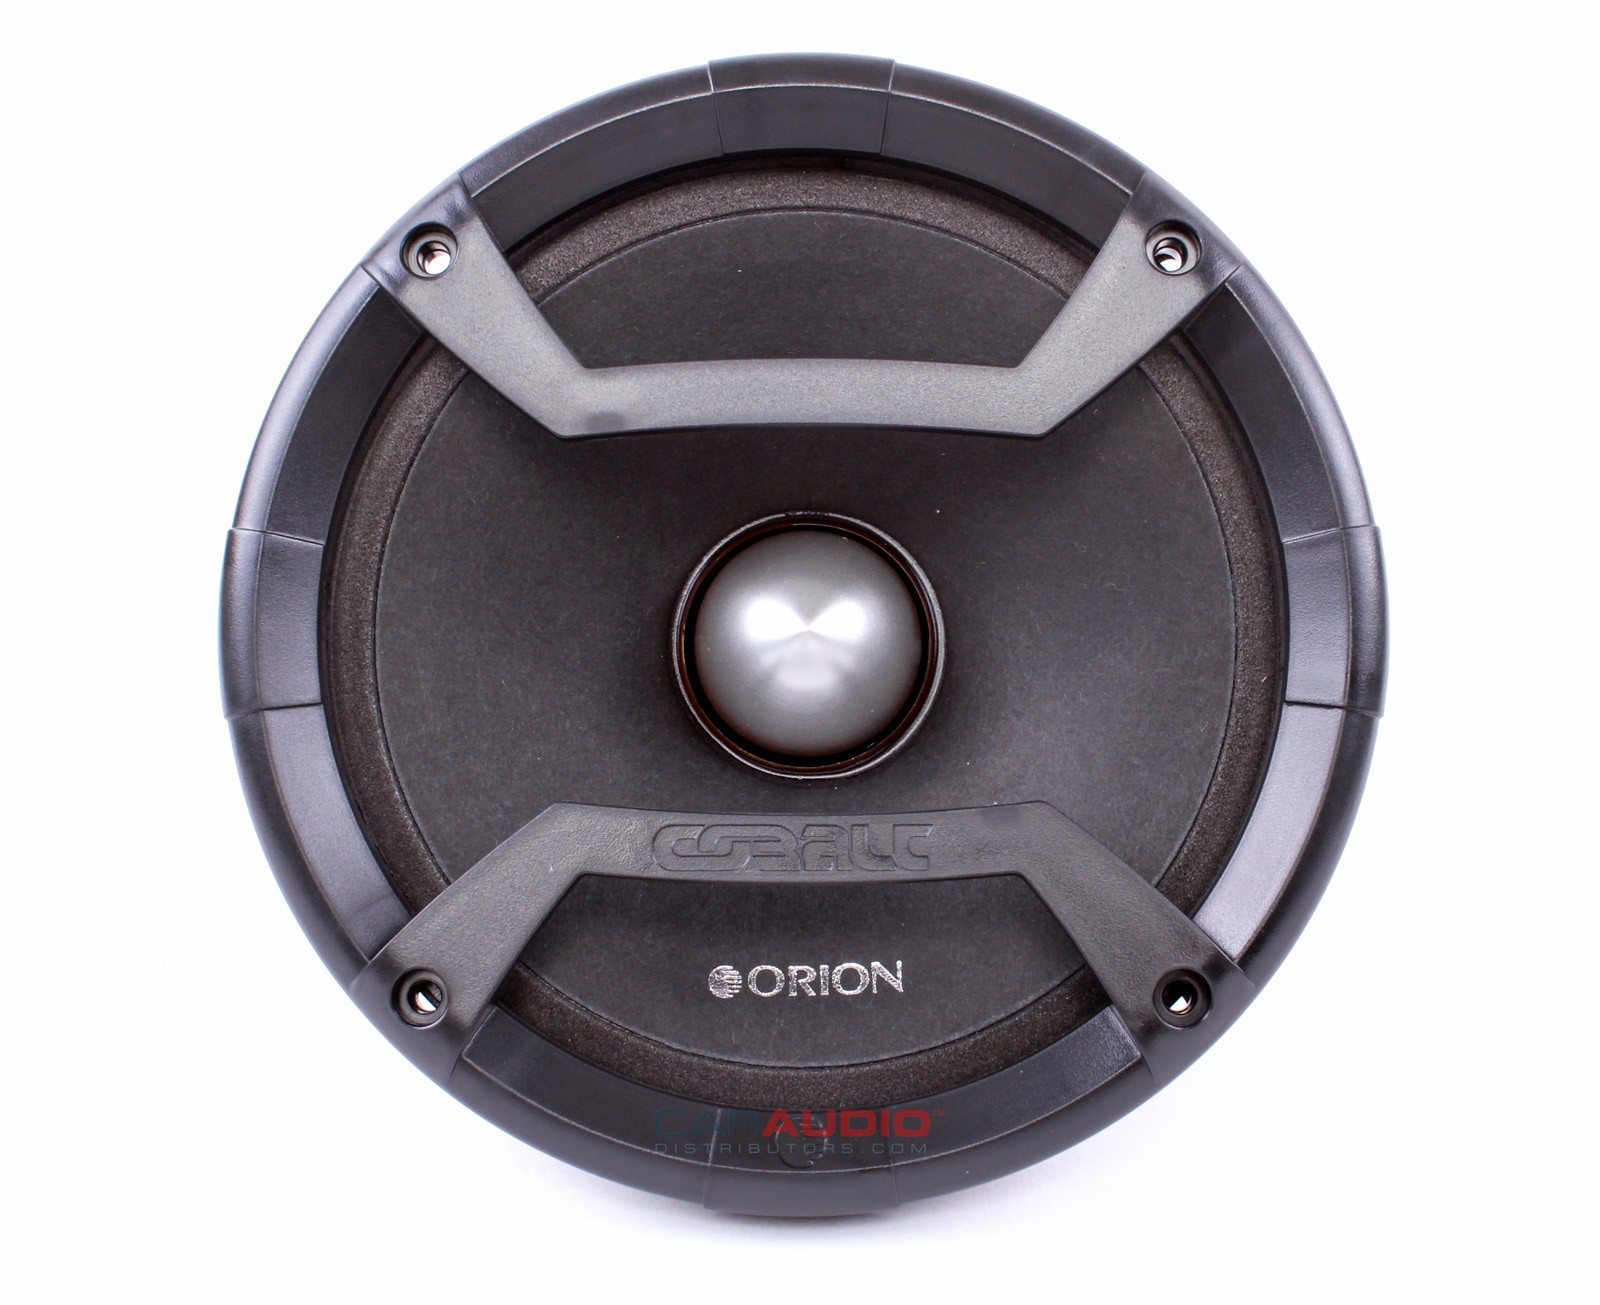 Orion car speakers review